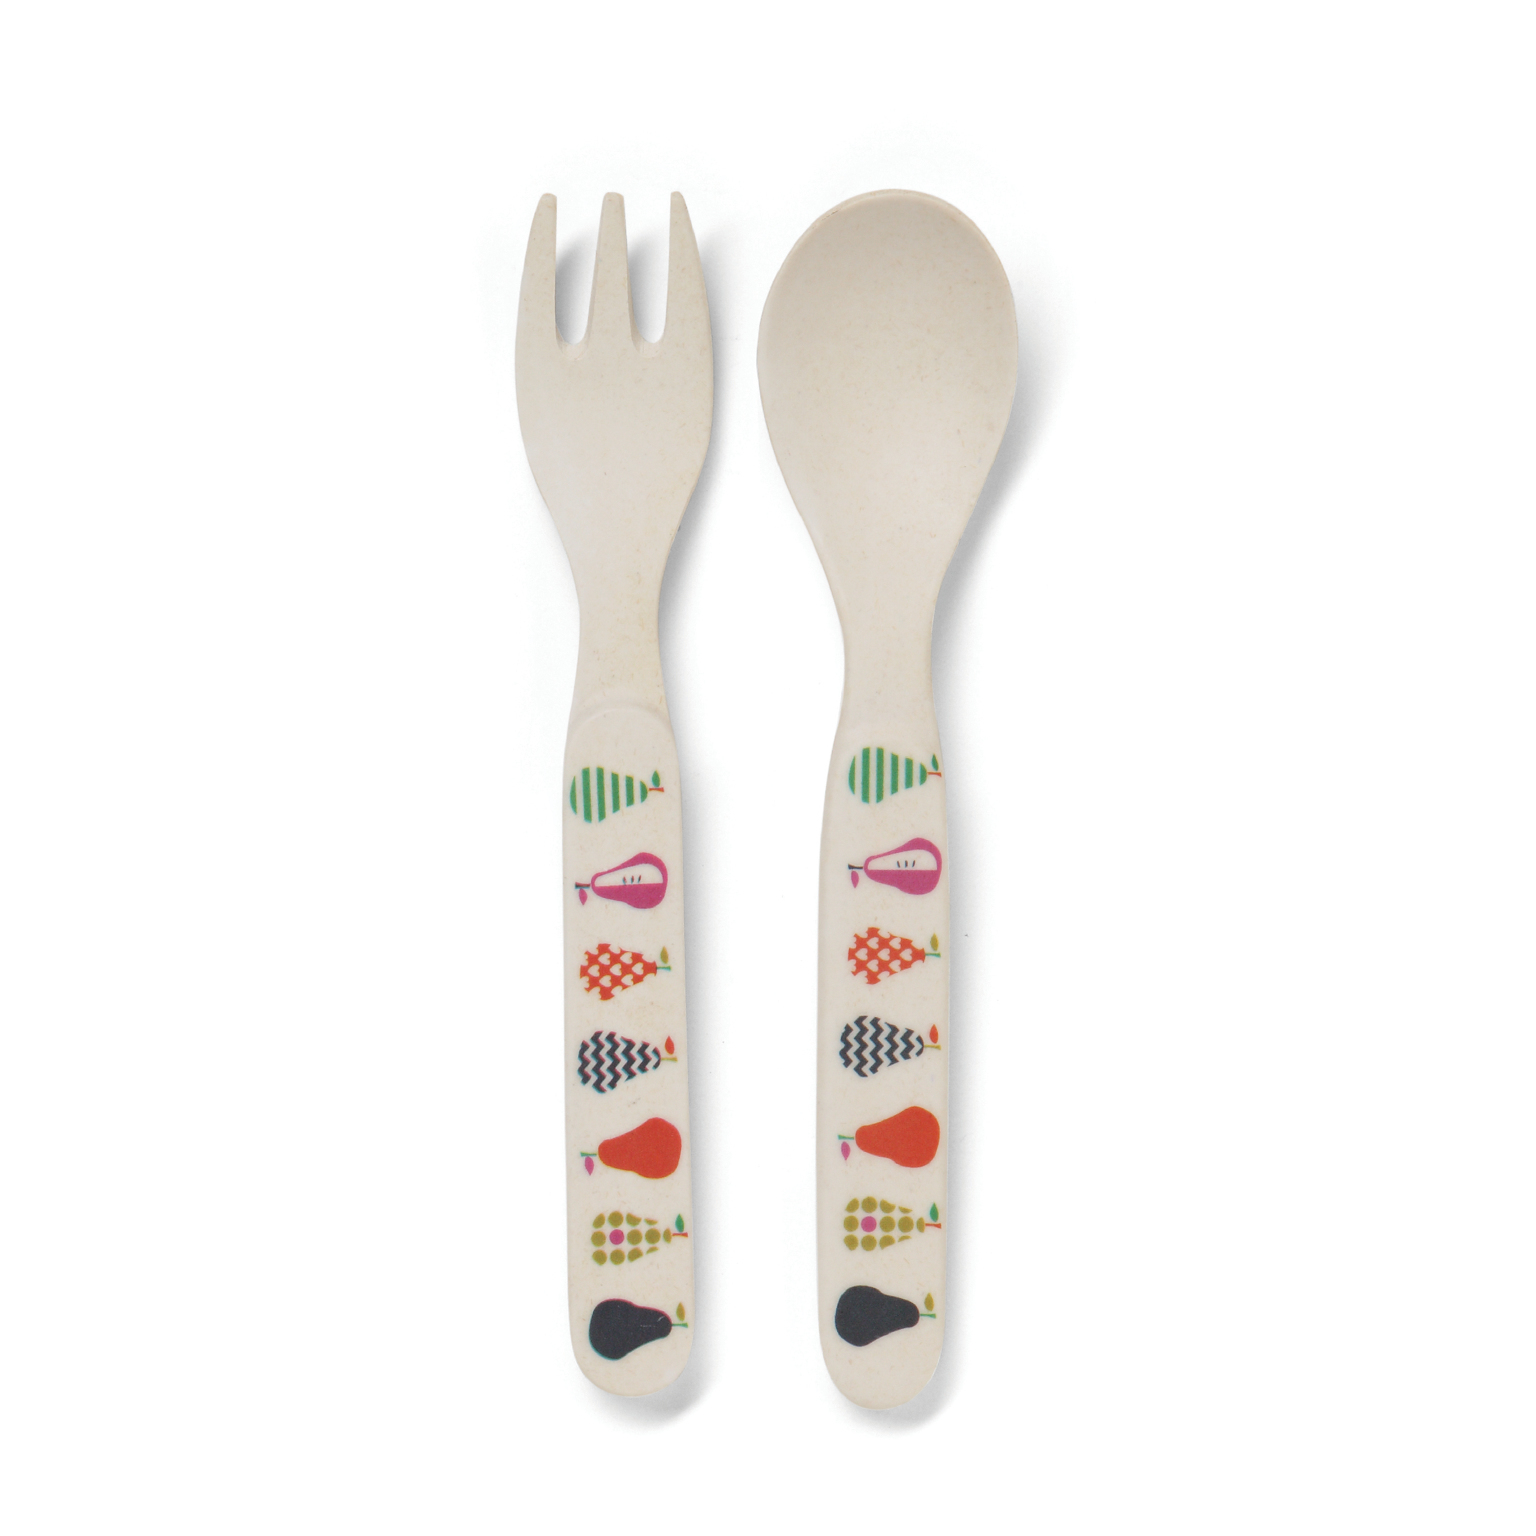 Pear Salad Bamboo Meal Set with Cutlery image